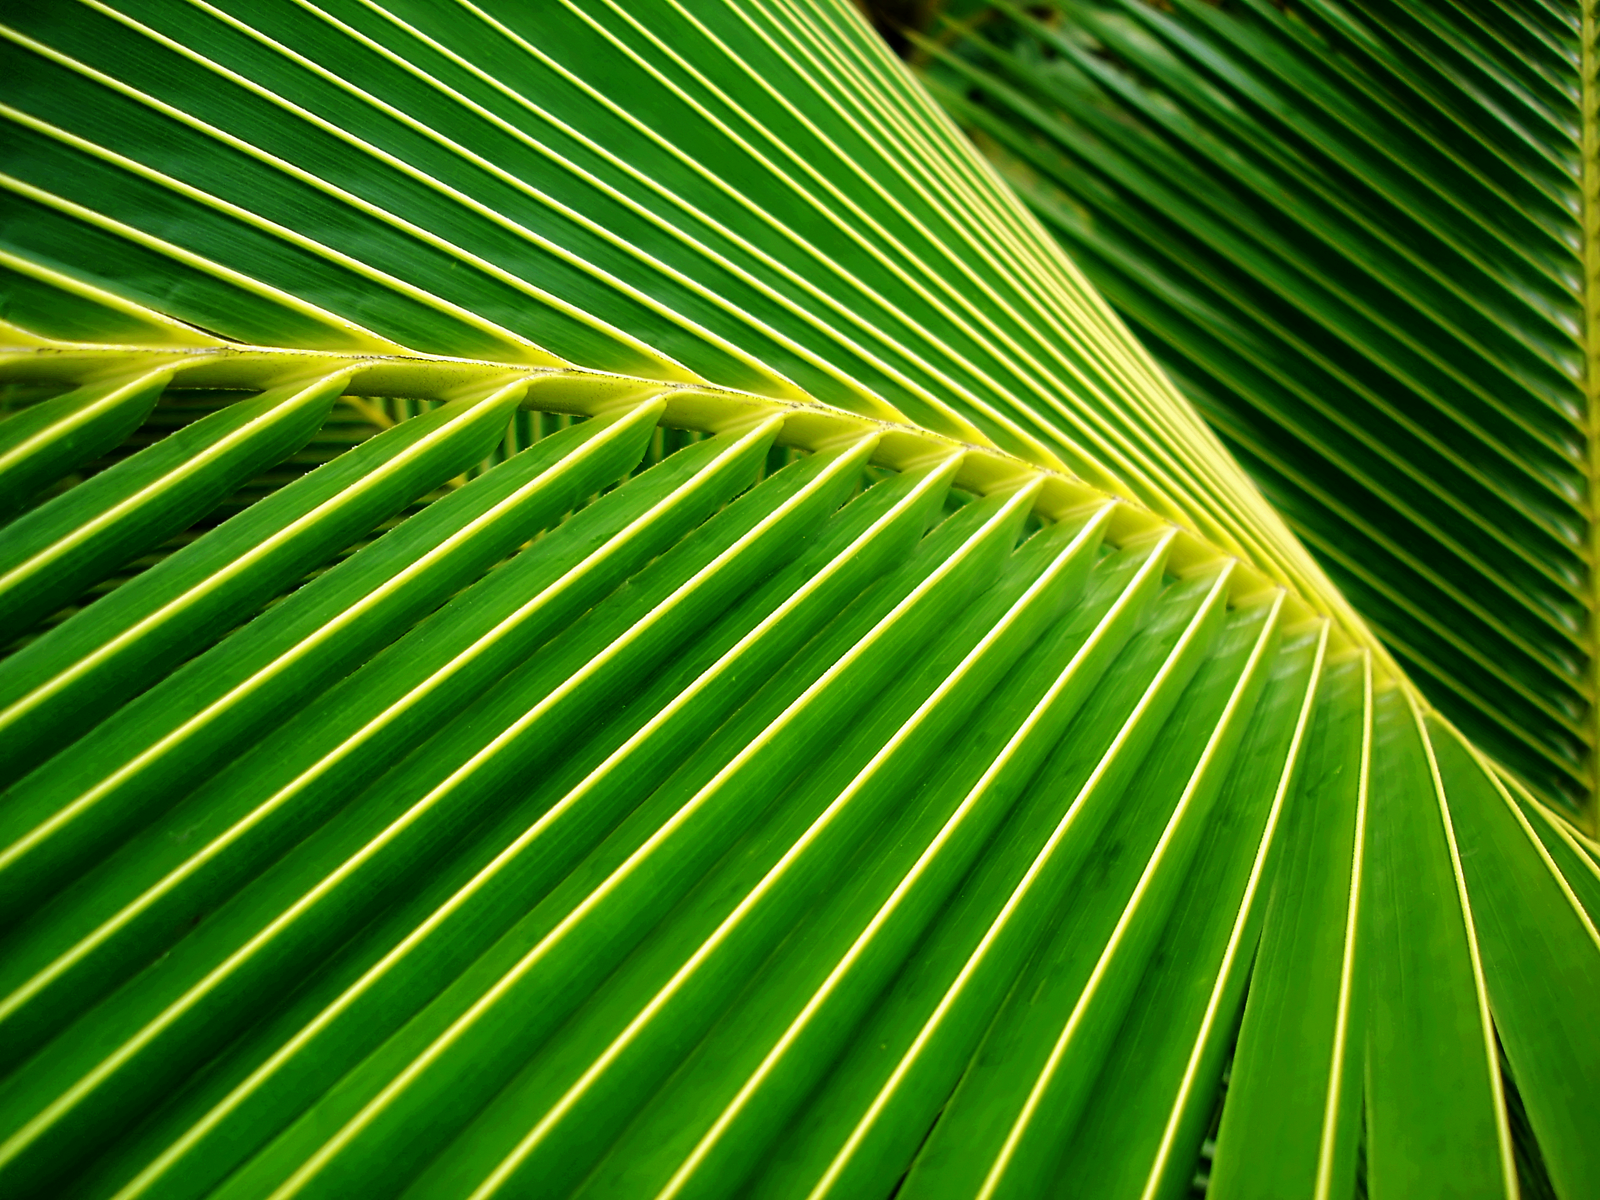 Palm Leaf Background wallpaper 1600x1200 31252 1600x1200